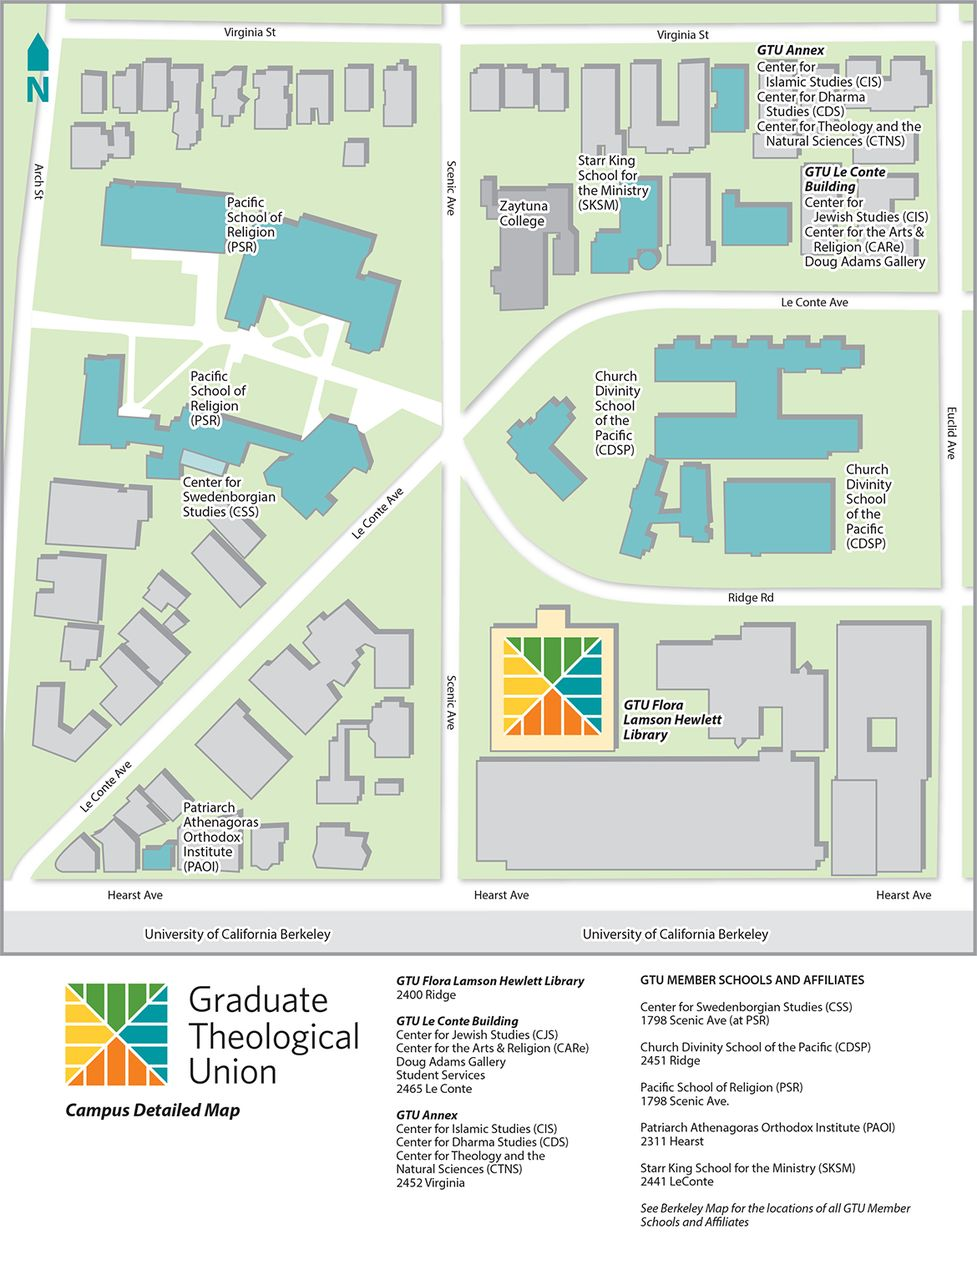 Maps Detailed Campus Map Graduate Theological Union